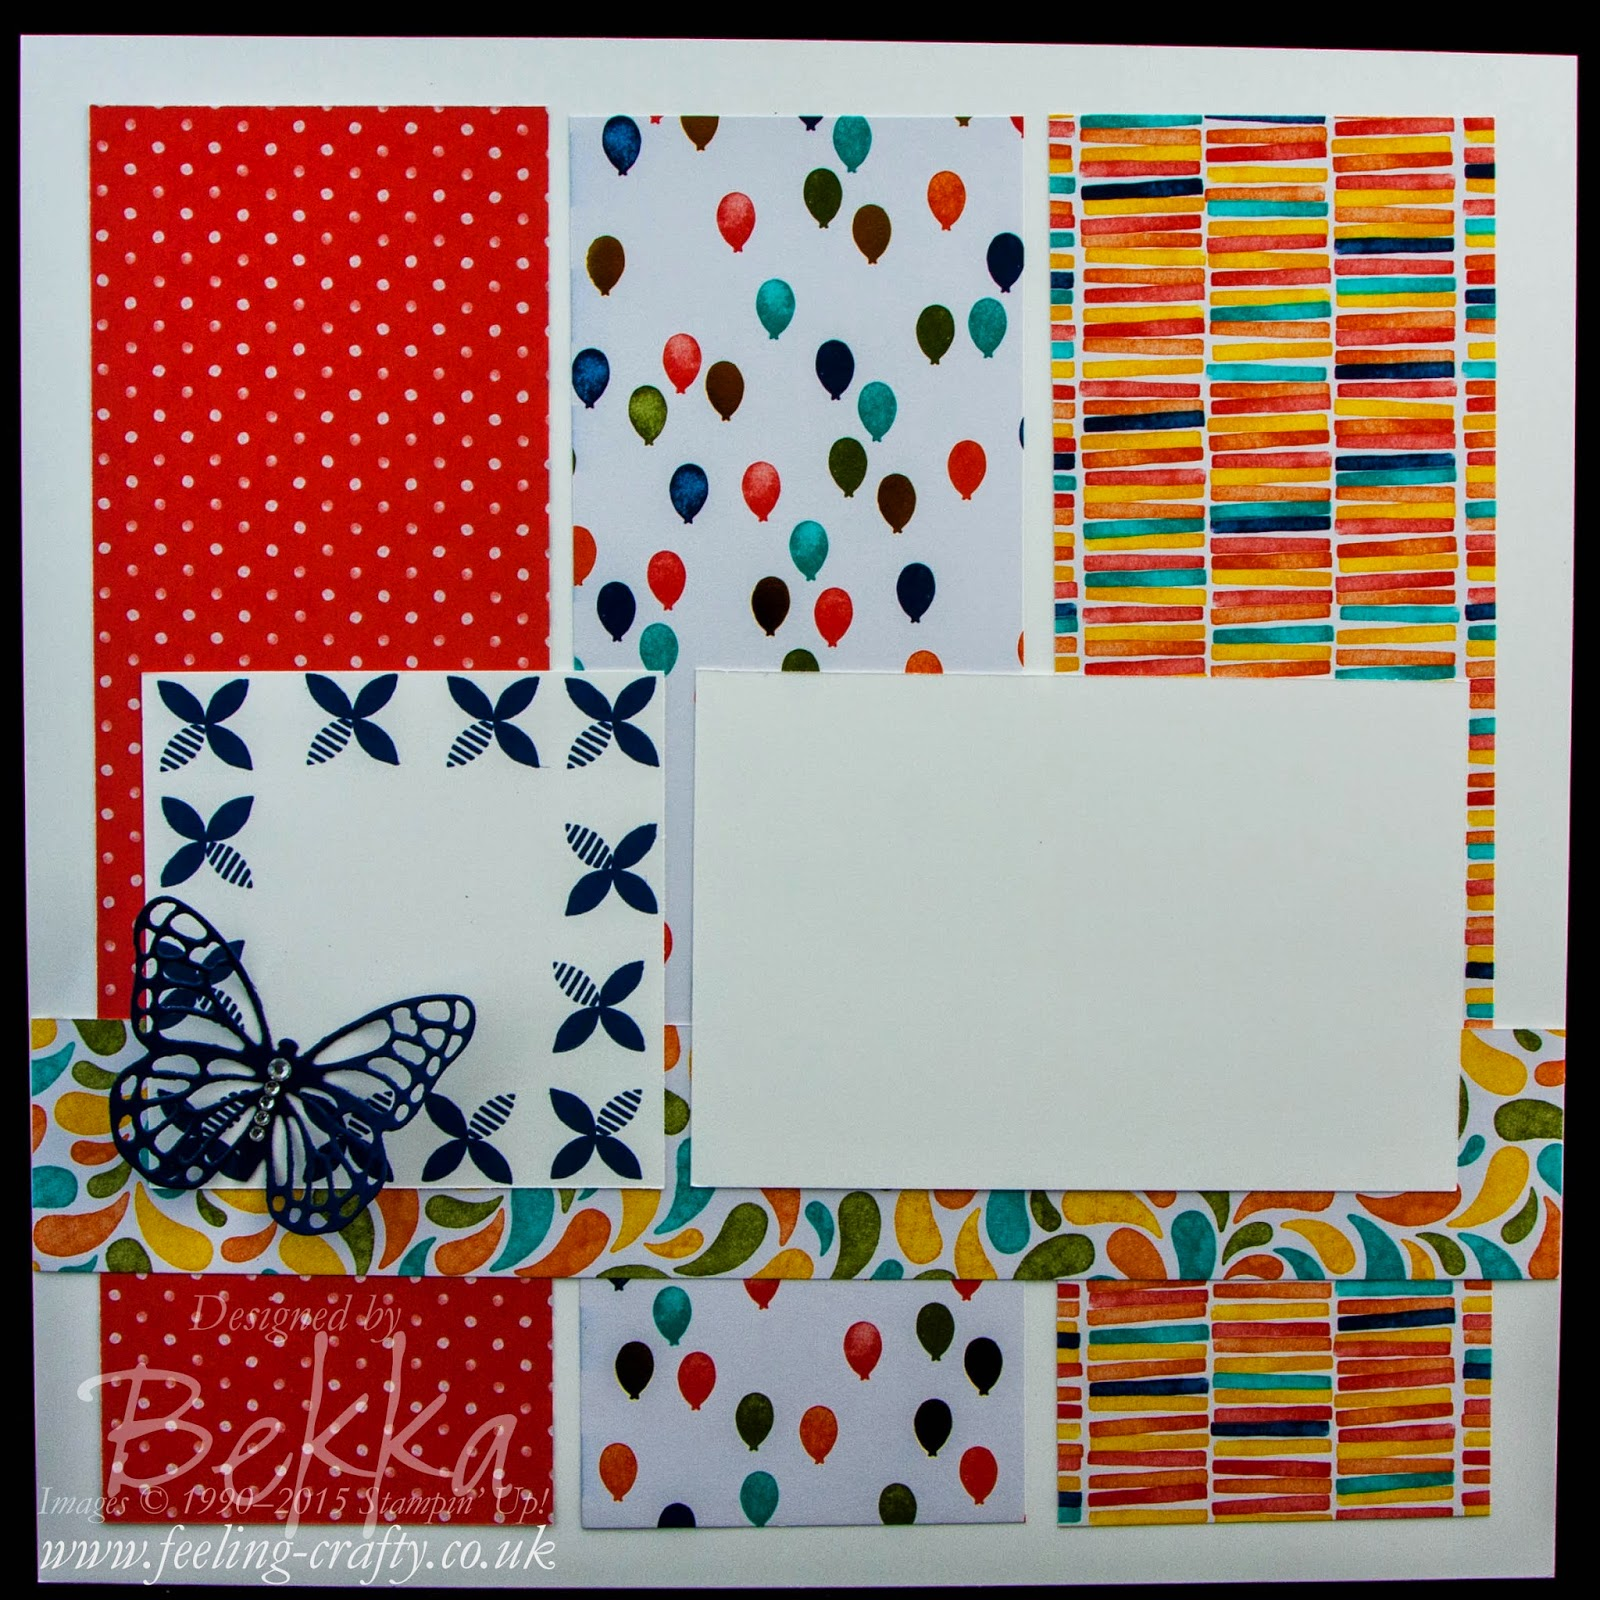 Birthday Bash Scrapbook Start Point - check this blog ever Saturday for Scrapbooking Ideas